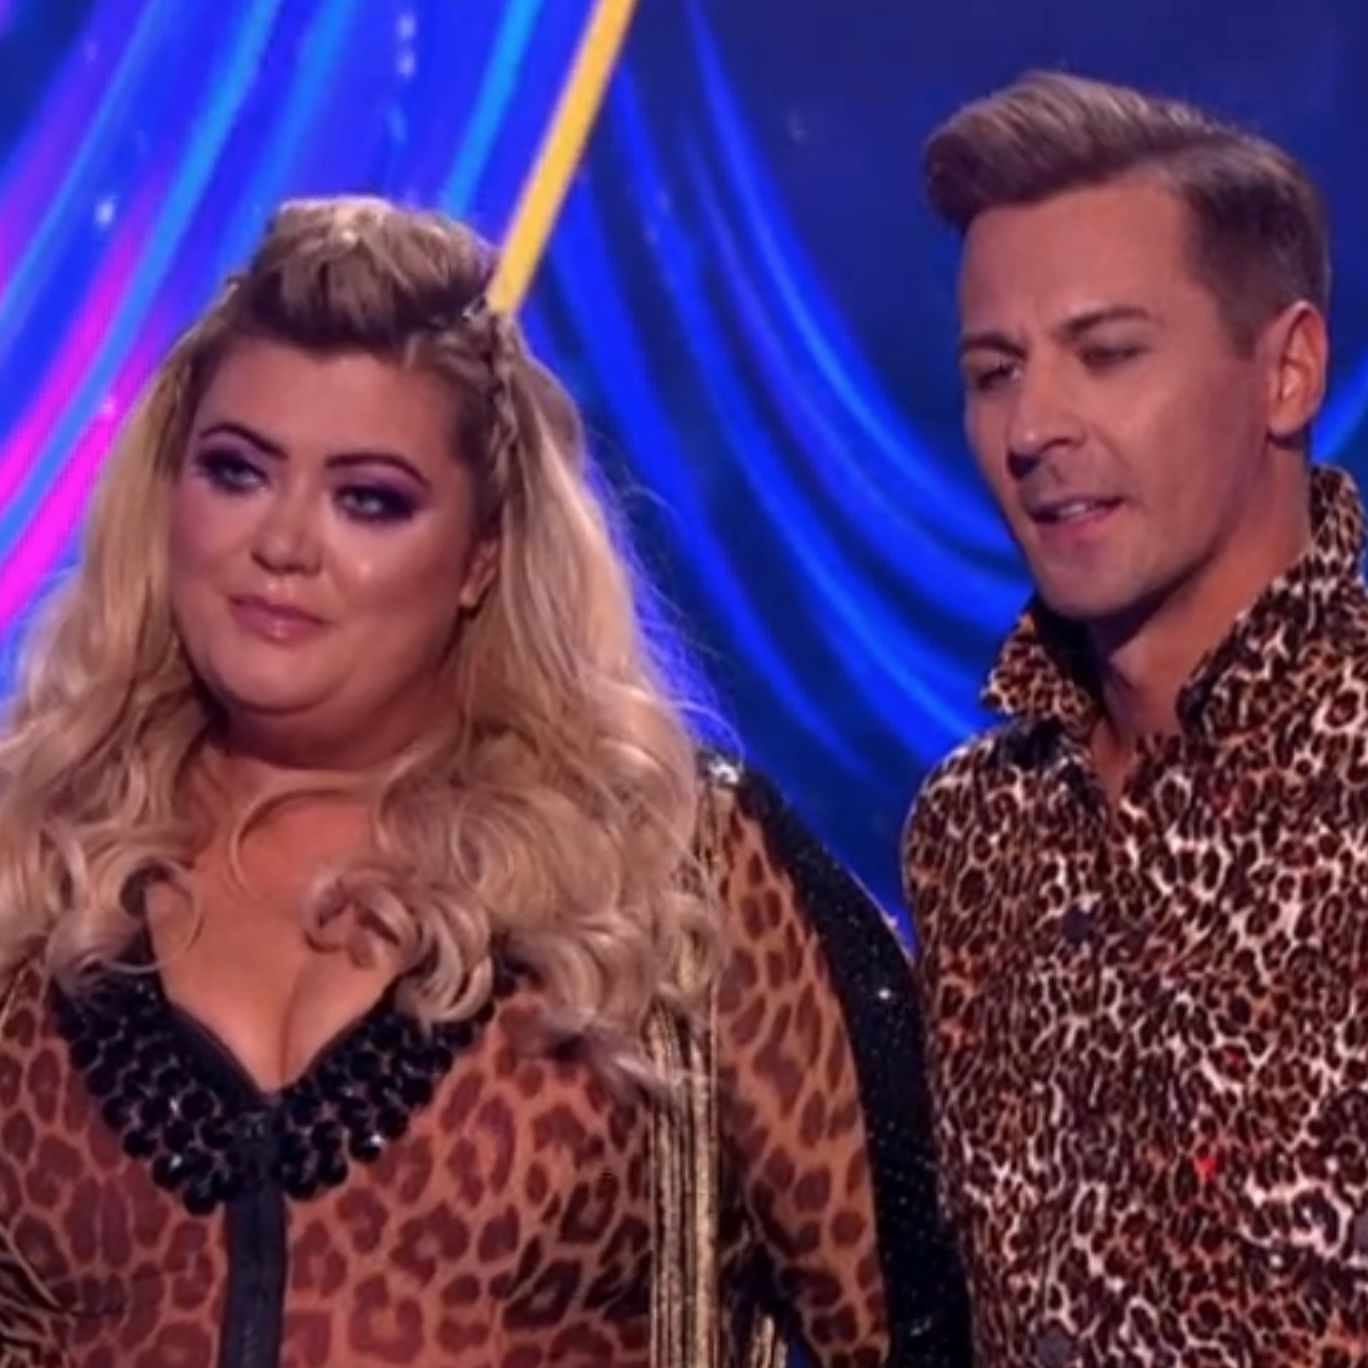 Dancing on Ice ratings fall a week after Gemma Collins' exit